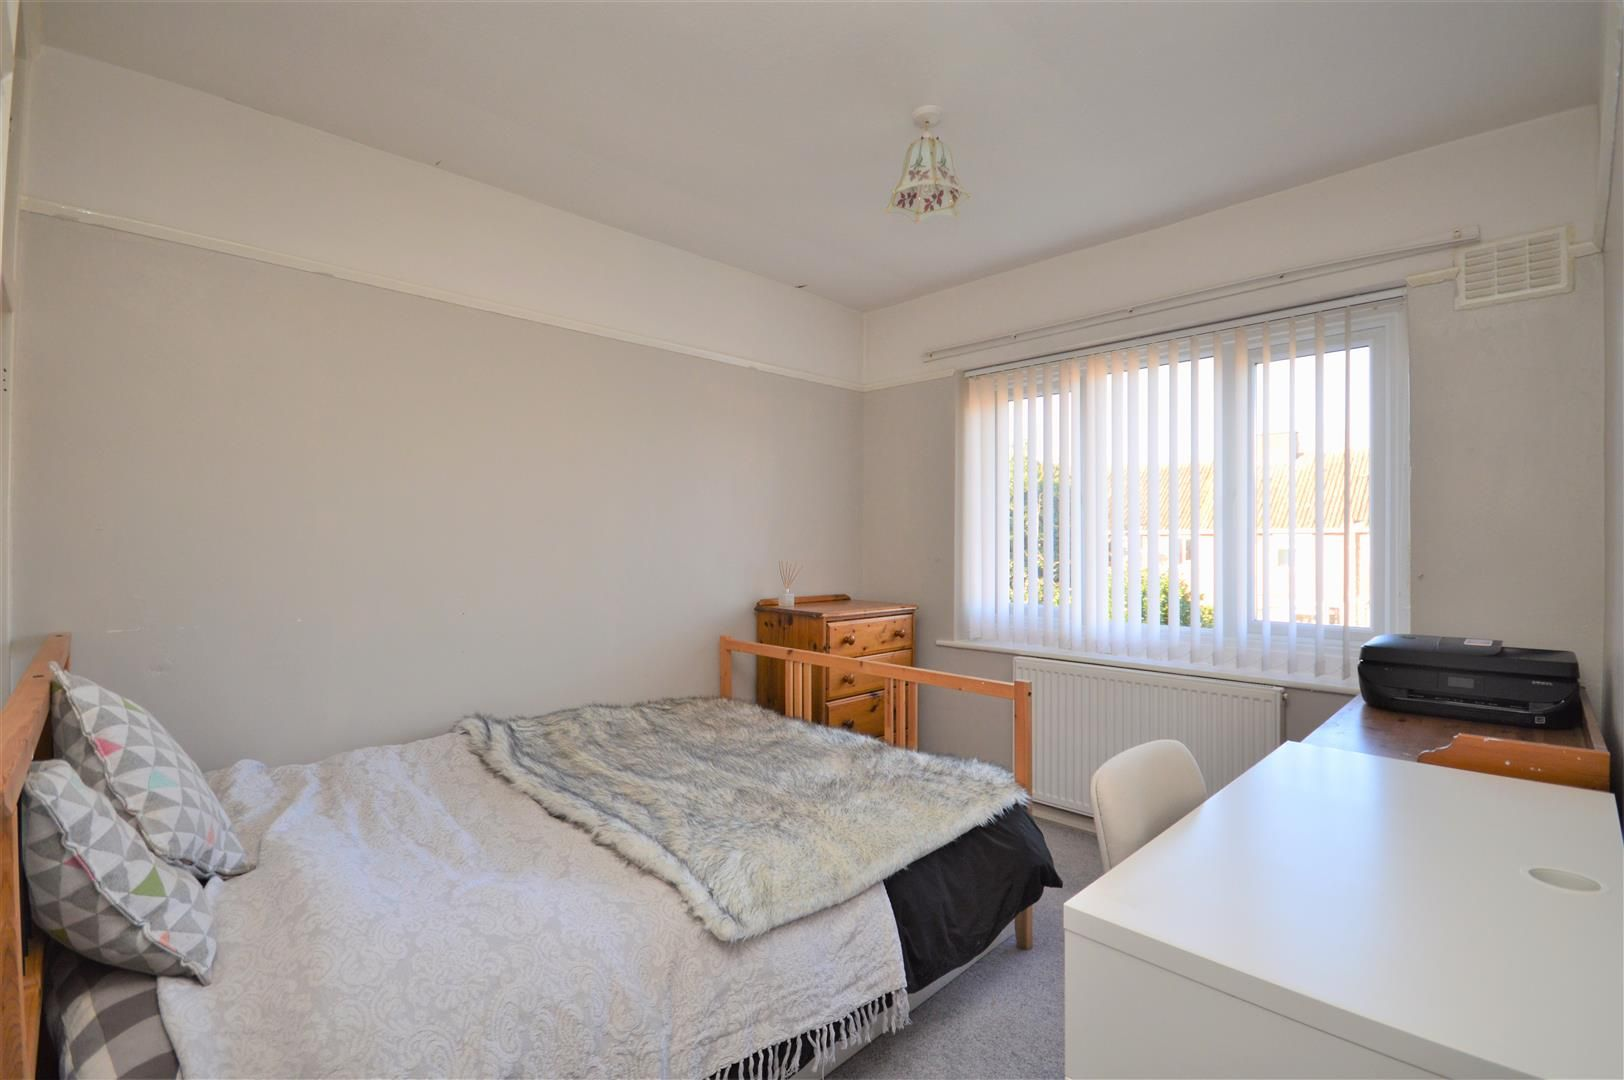 3 bed end-of-terrace for sale in Hereford  - Property Image 11